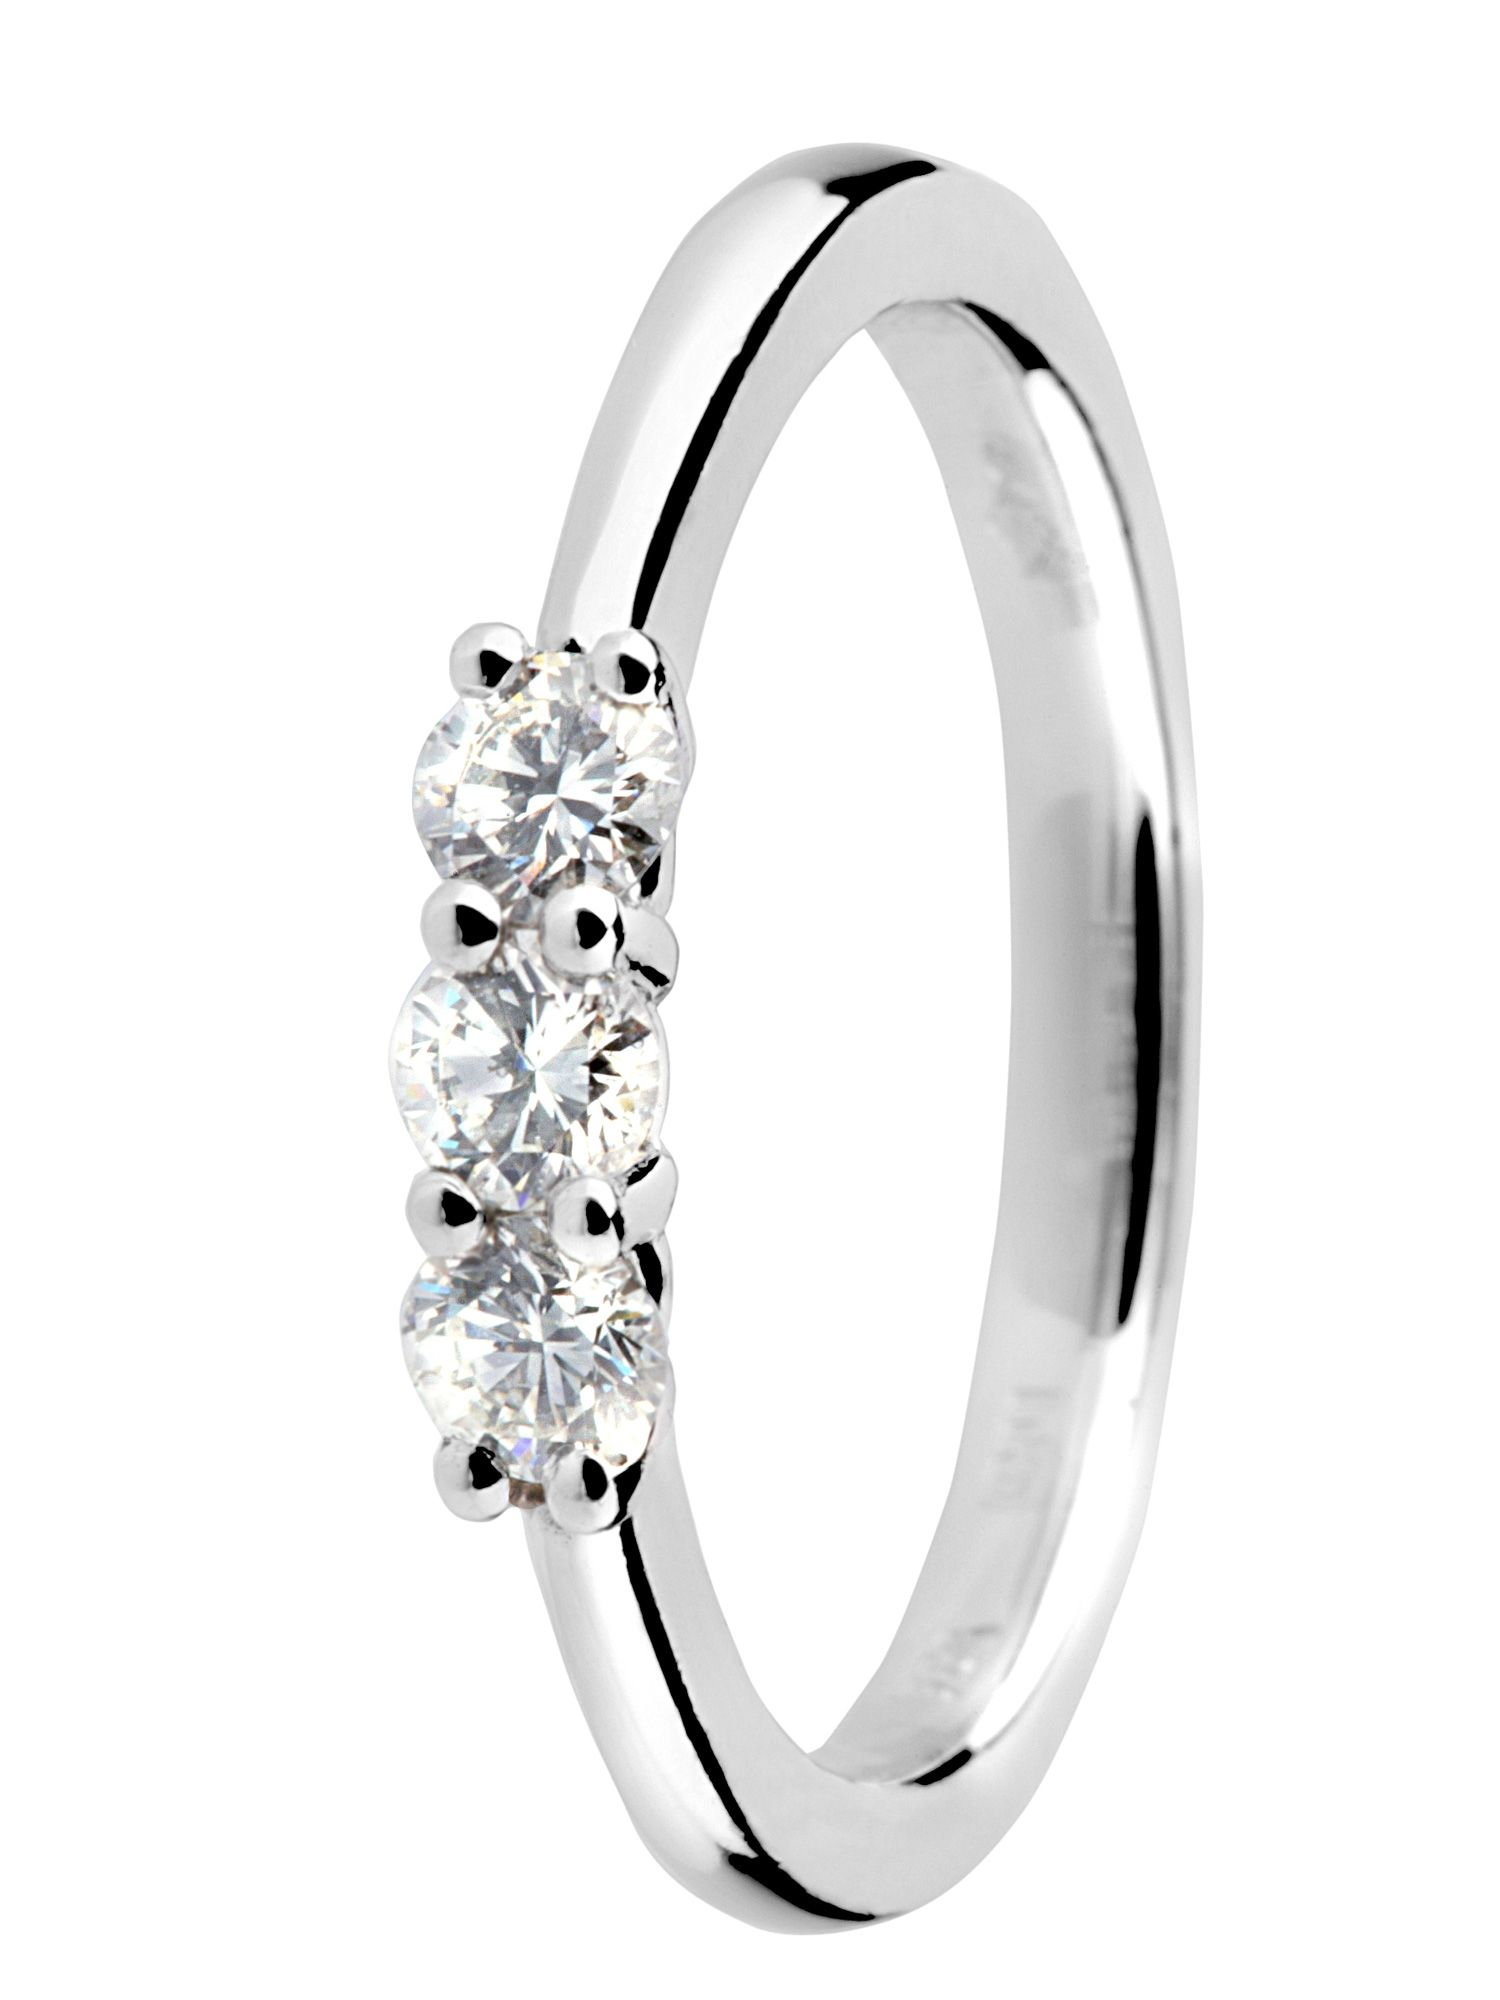 Goldsmiths platinum 3 stone 0.33ct diamond ring